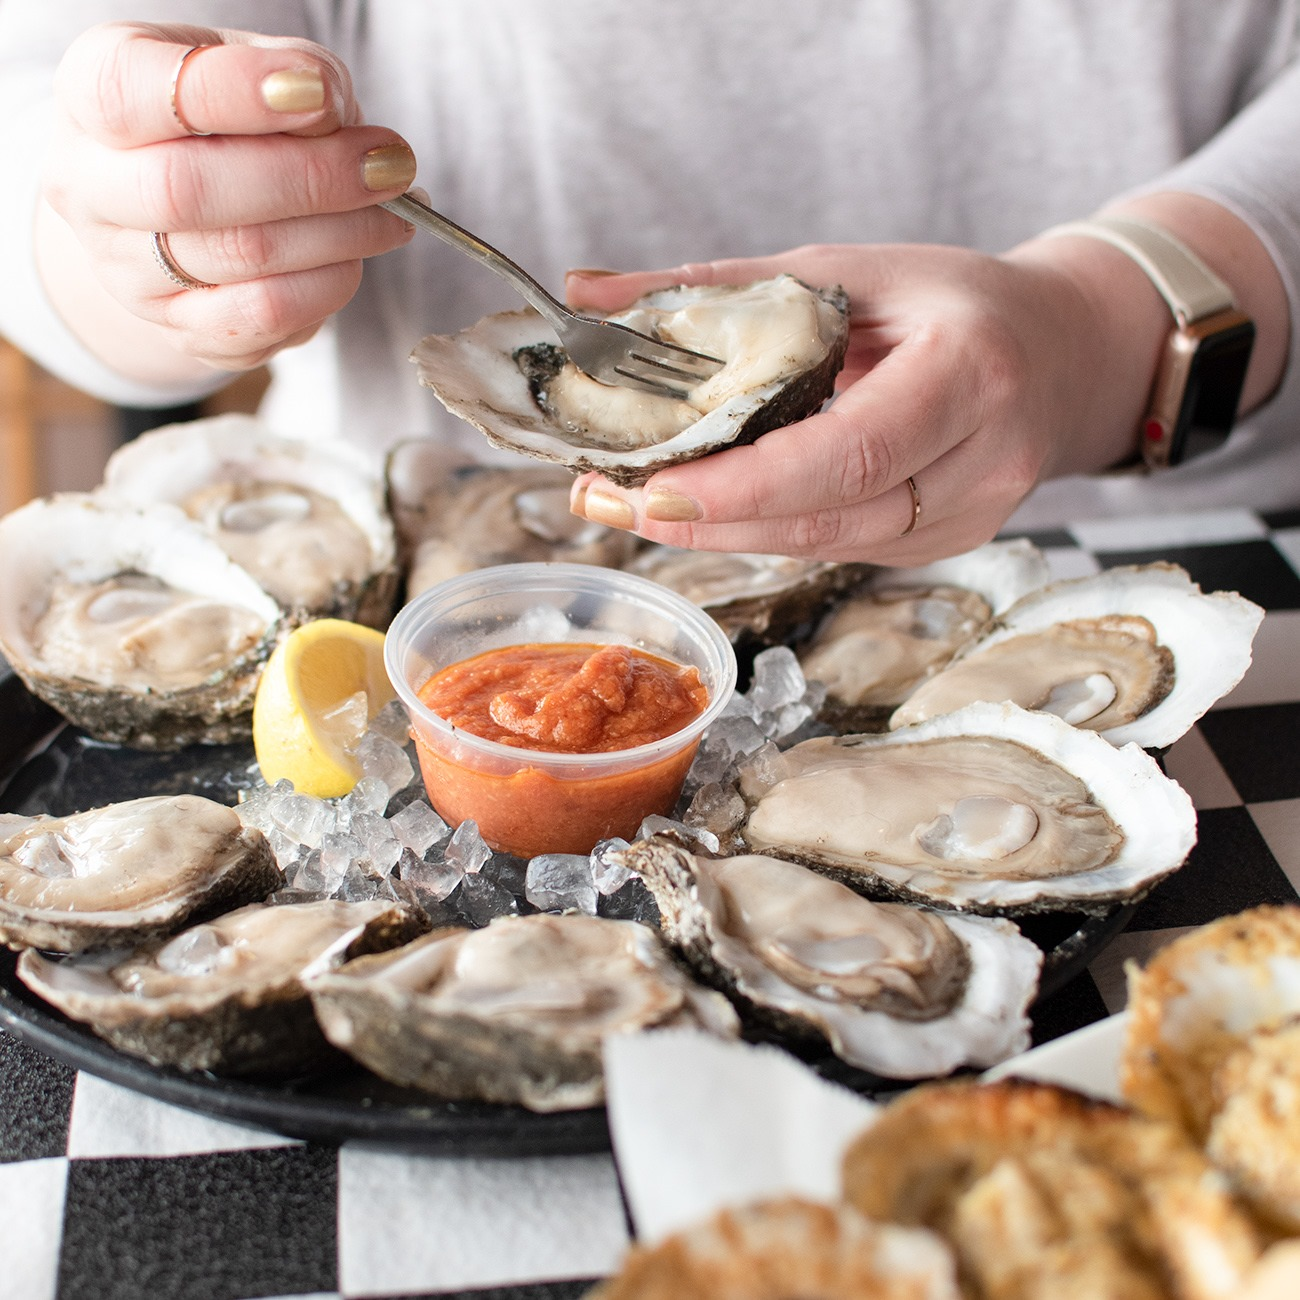 a person eating raw oysters from the halfshell with a fork